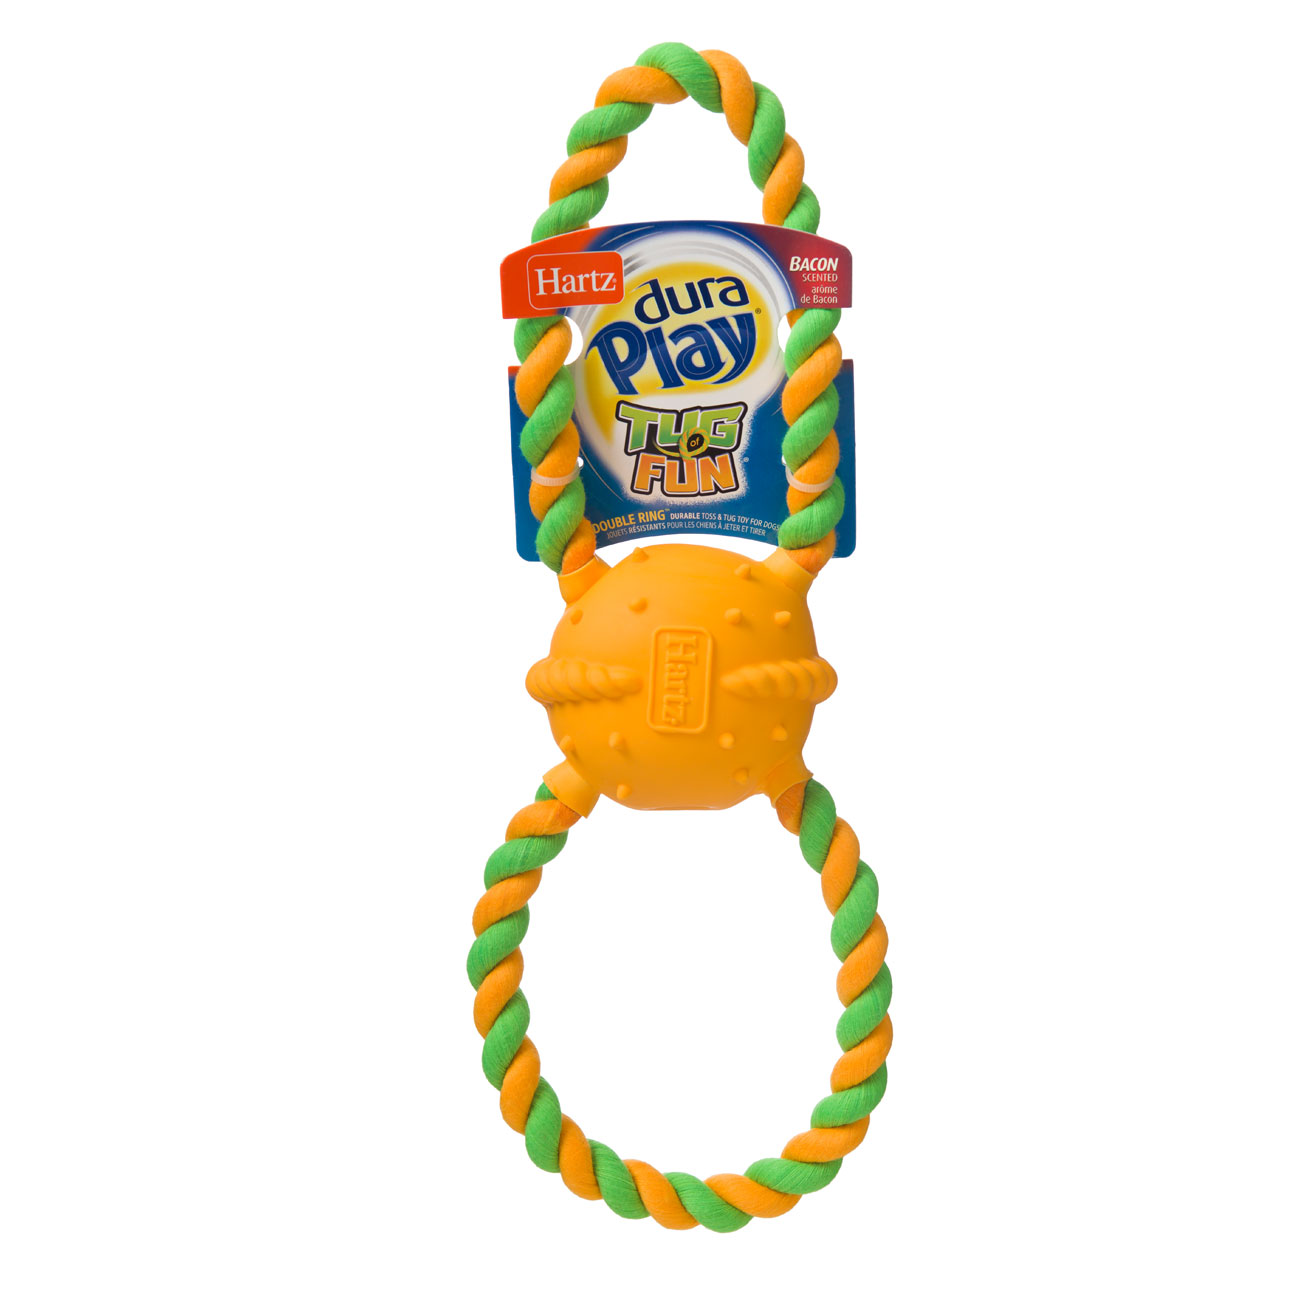 Green and orange cotton rope toy for dogs, Hartz SKU 3270015386